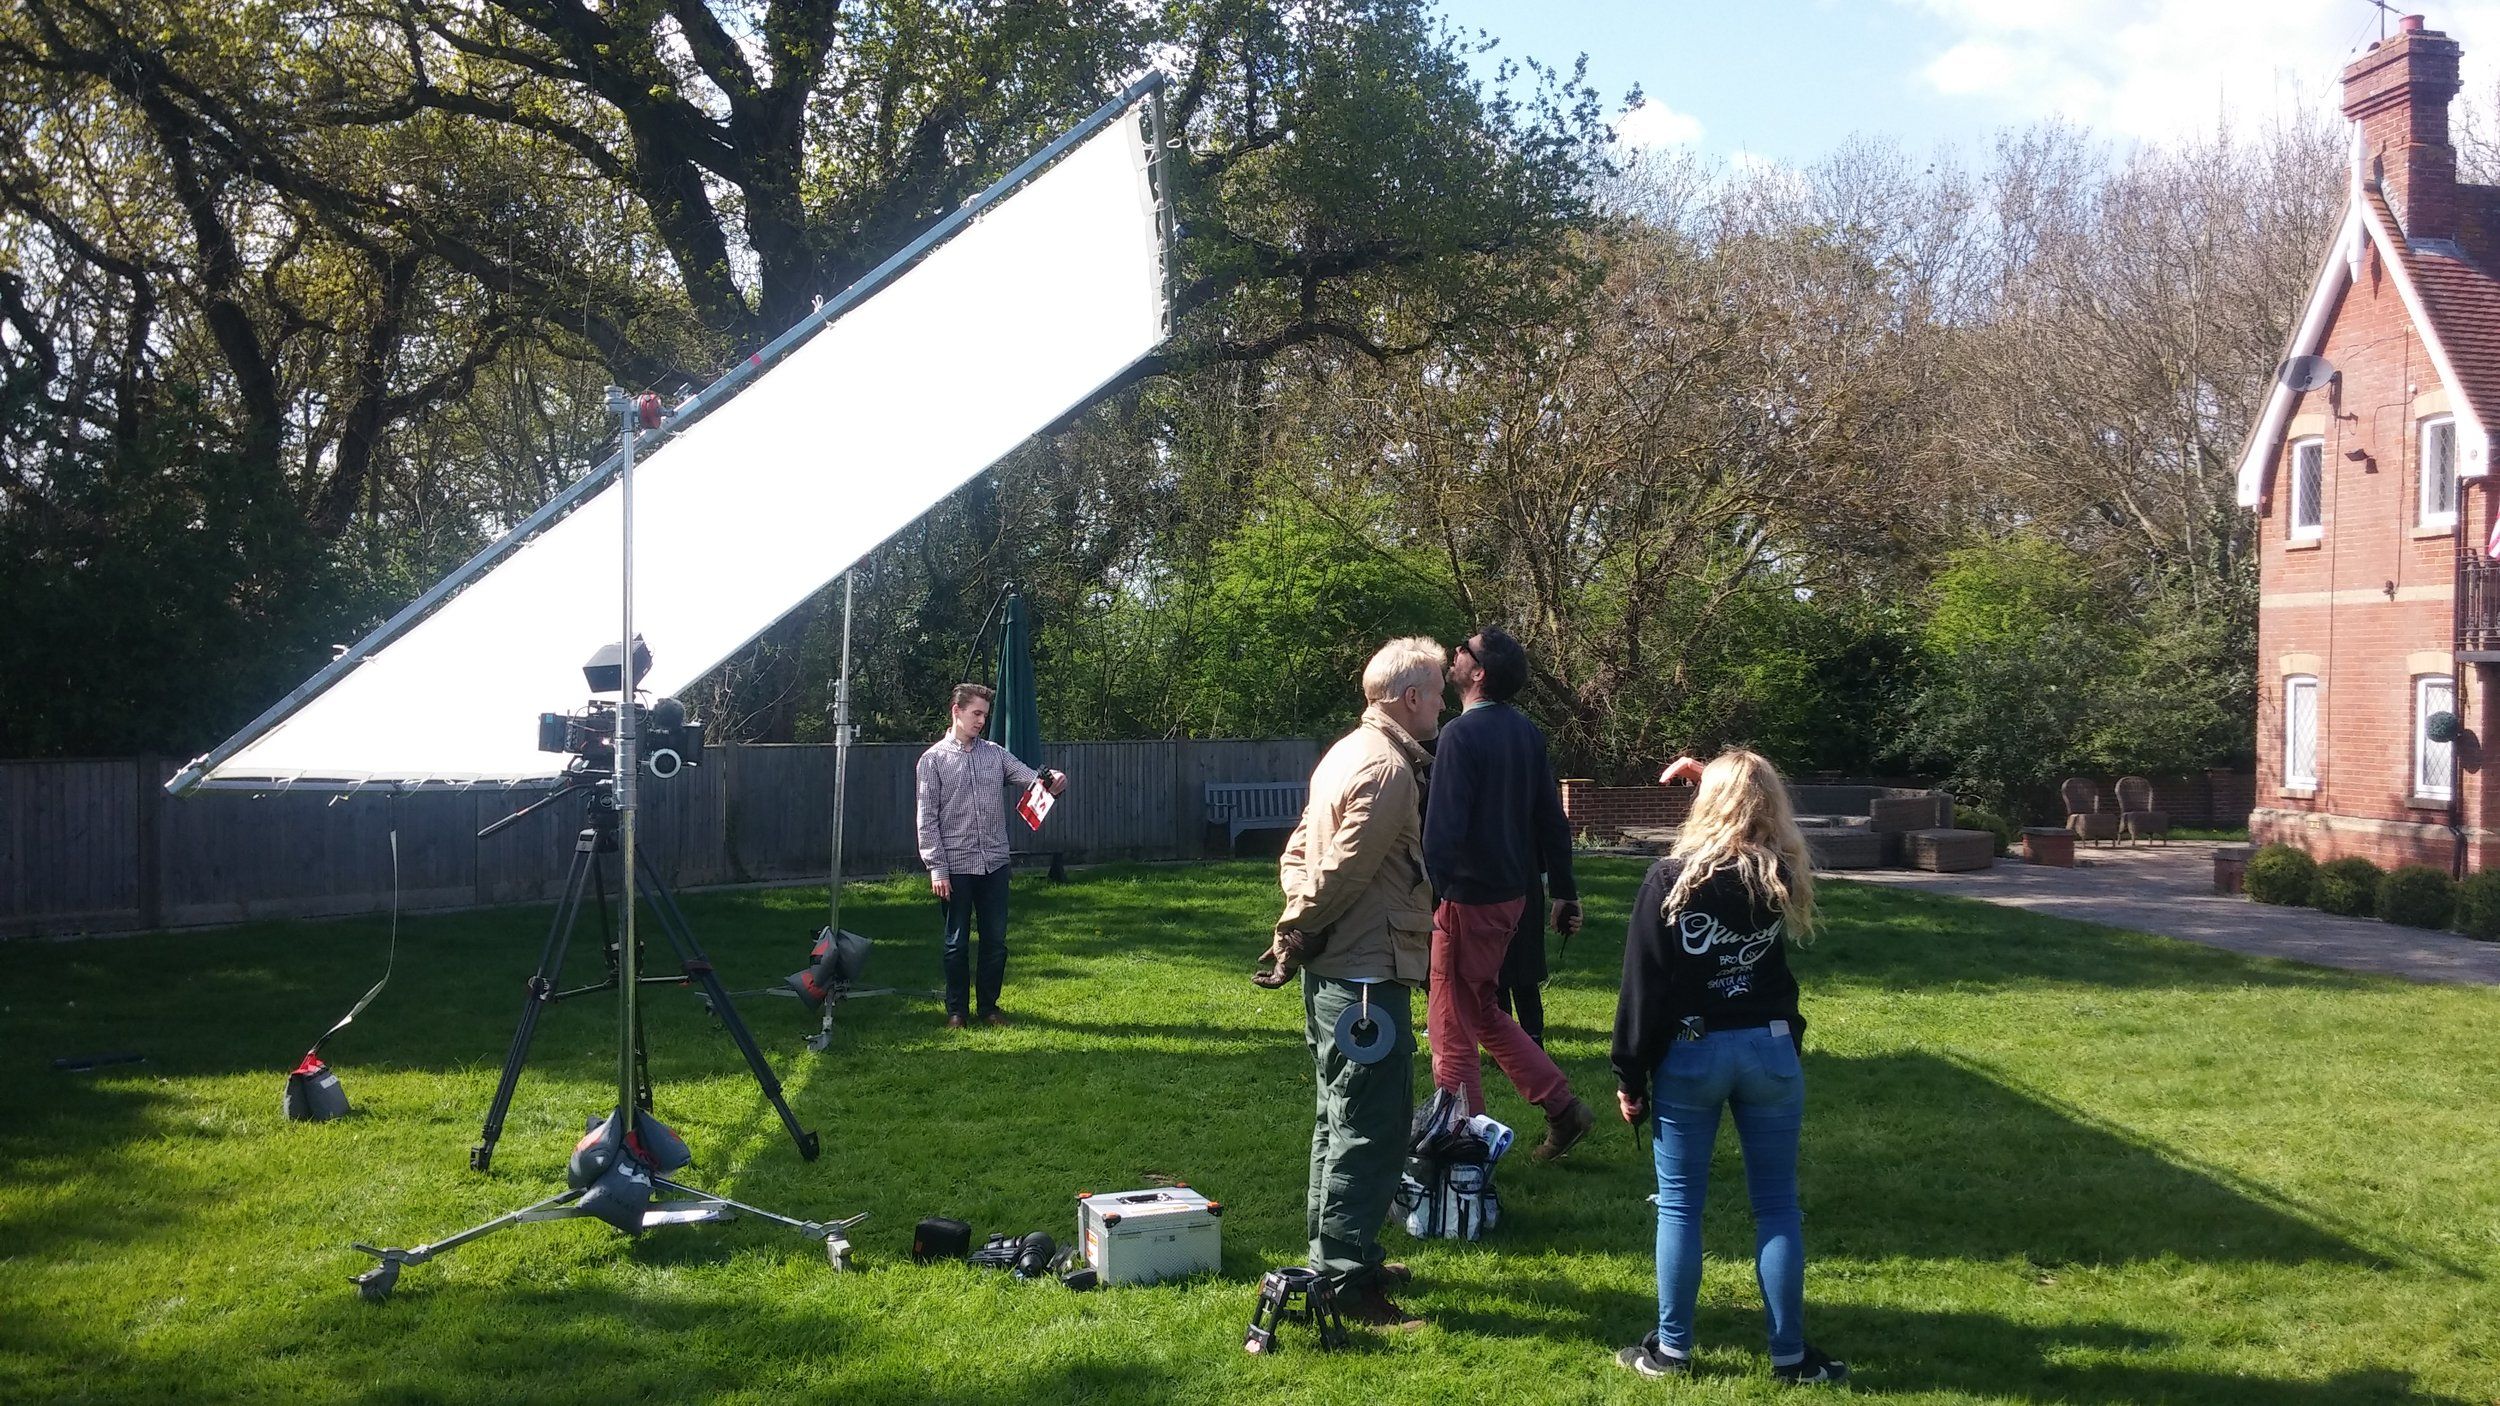 On set with  Substantial Films  recently; on this bright day a huge trace frame was used to soften the harshness of the sun. Because our shot involved two actors we needed to diffuse a large area.